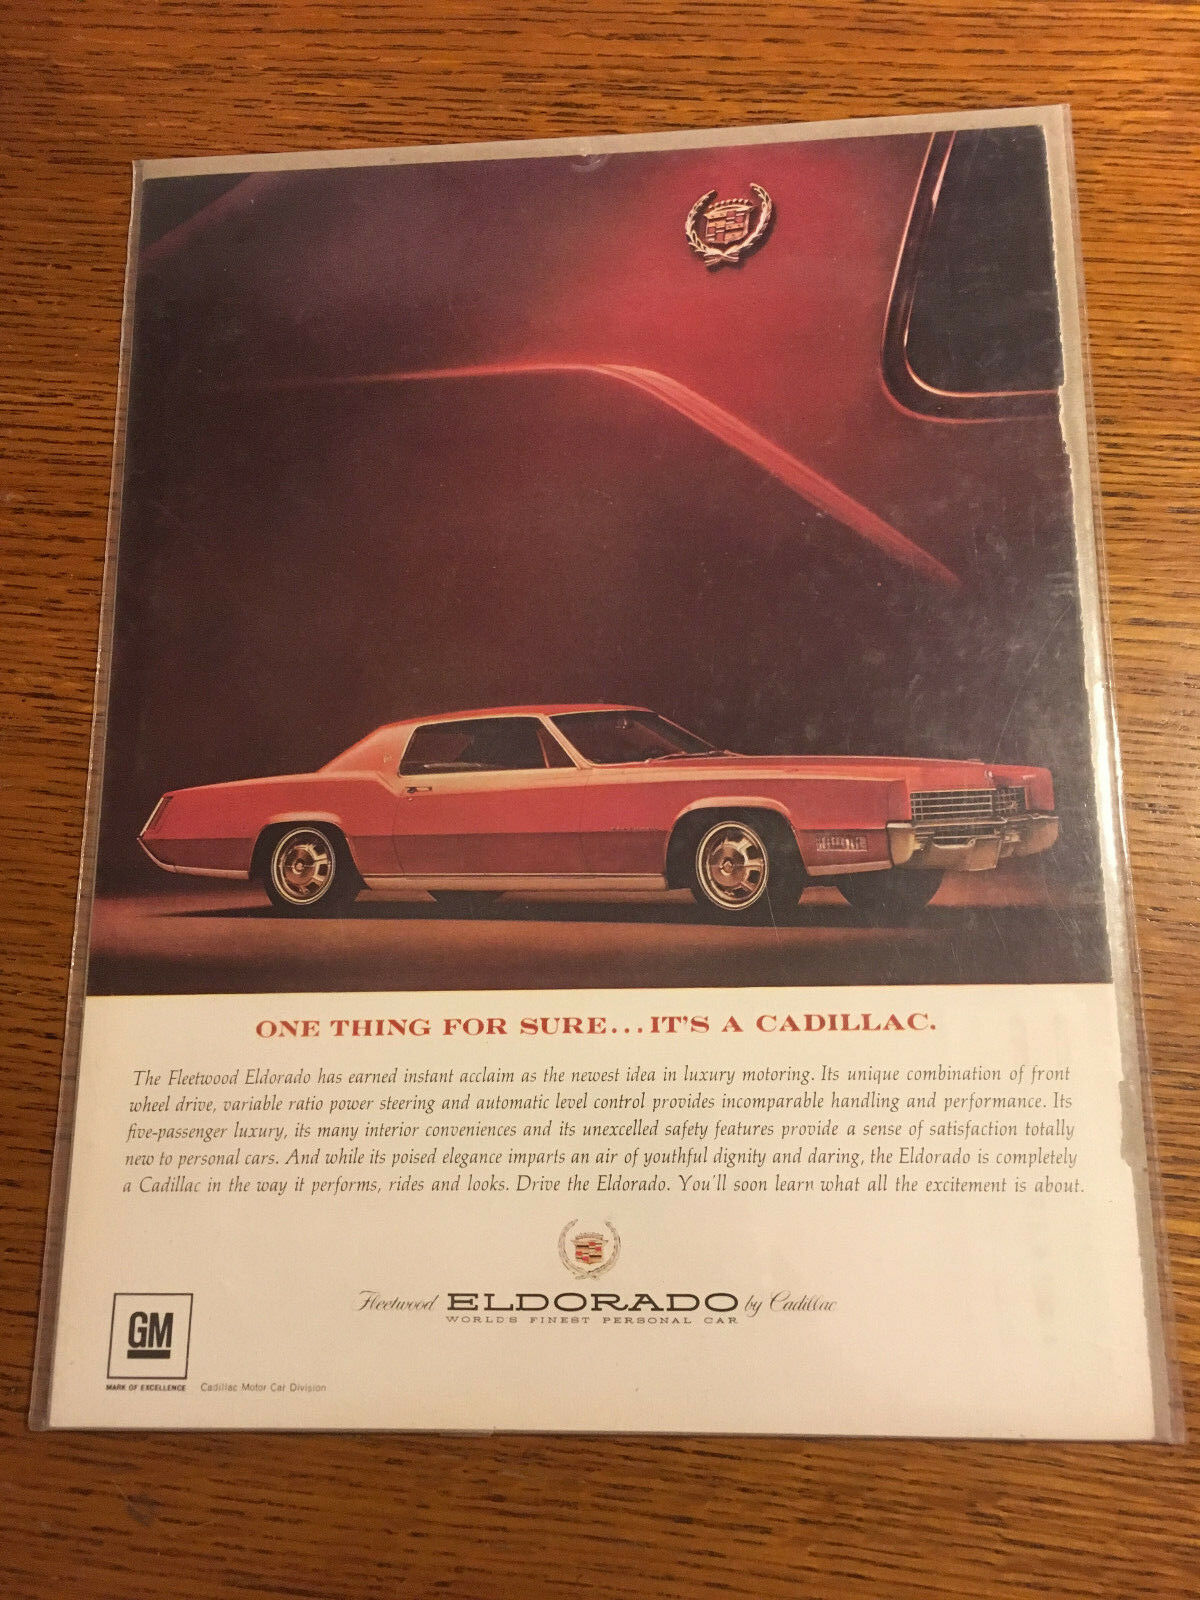 "Vintage Original 1967 - Cadillac Fleetwood Eldorado  Photo Print  Ad 8.5""x 11"" - $4.70"